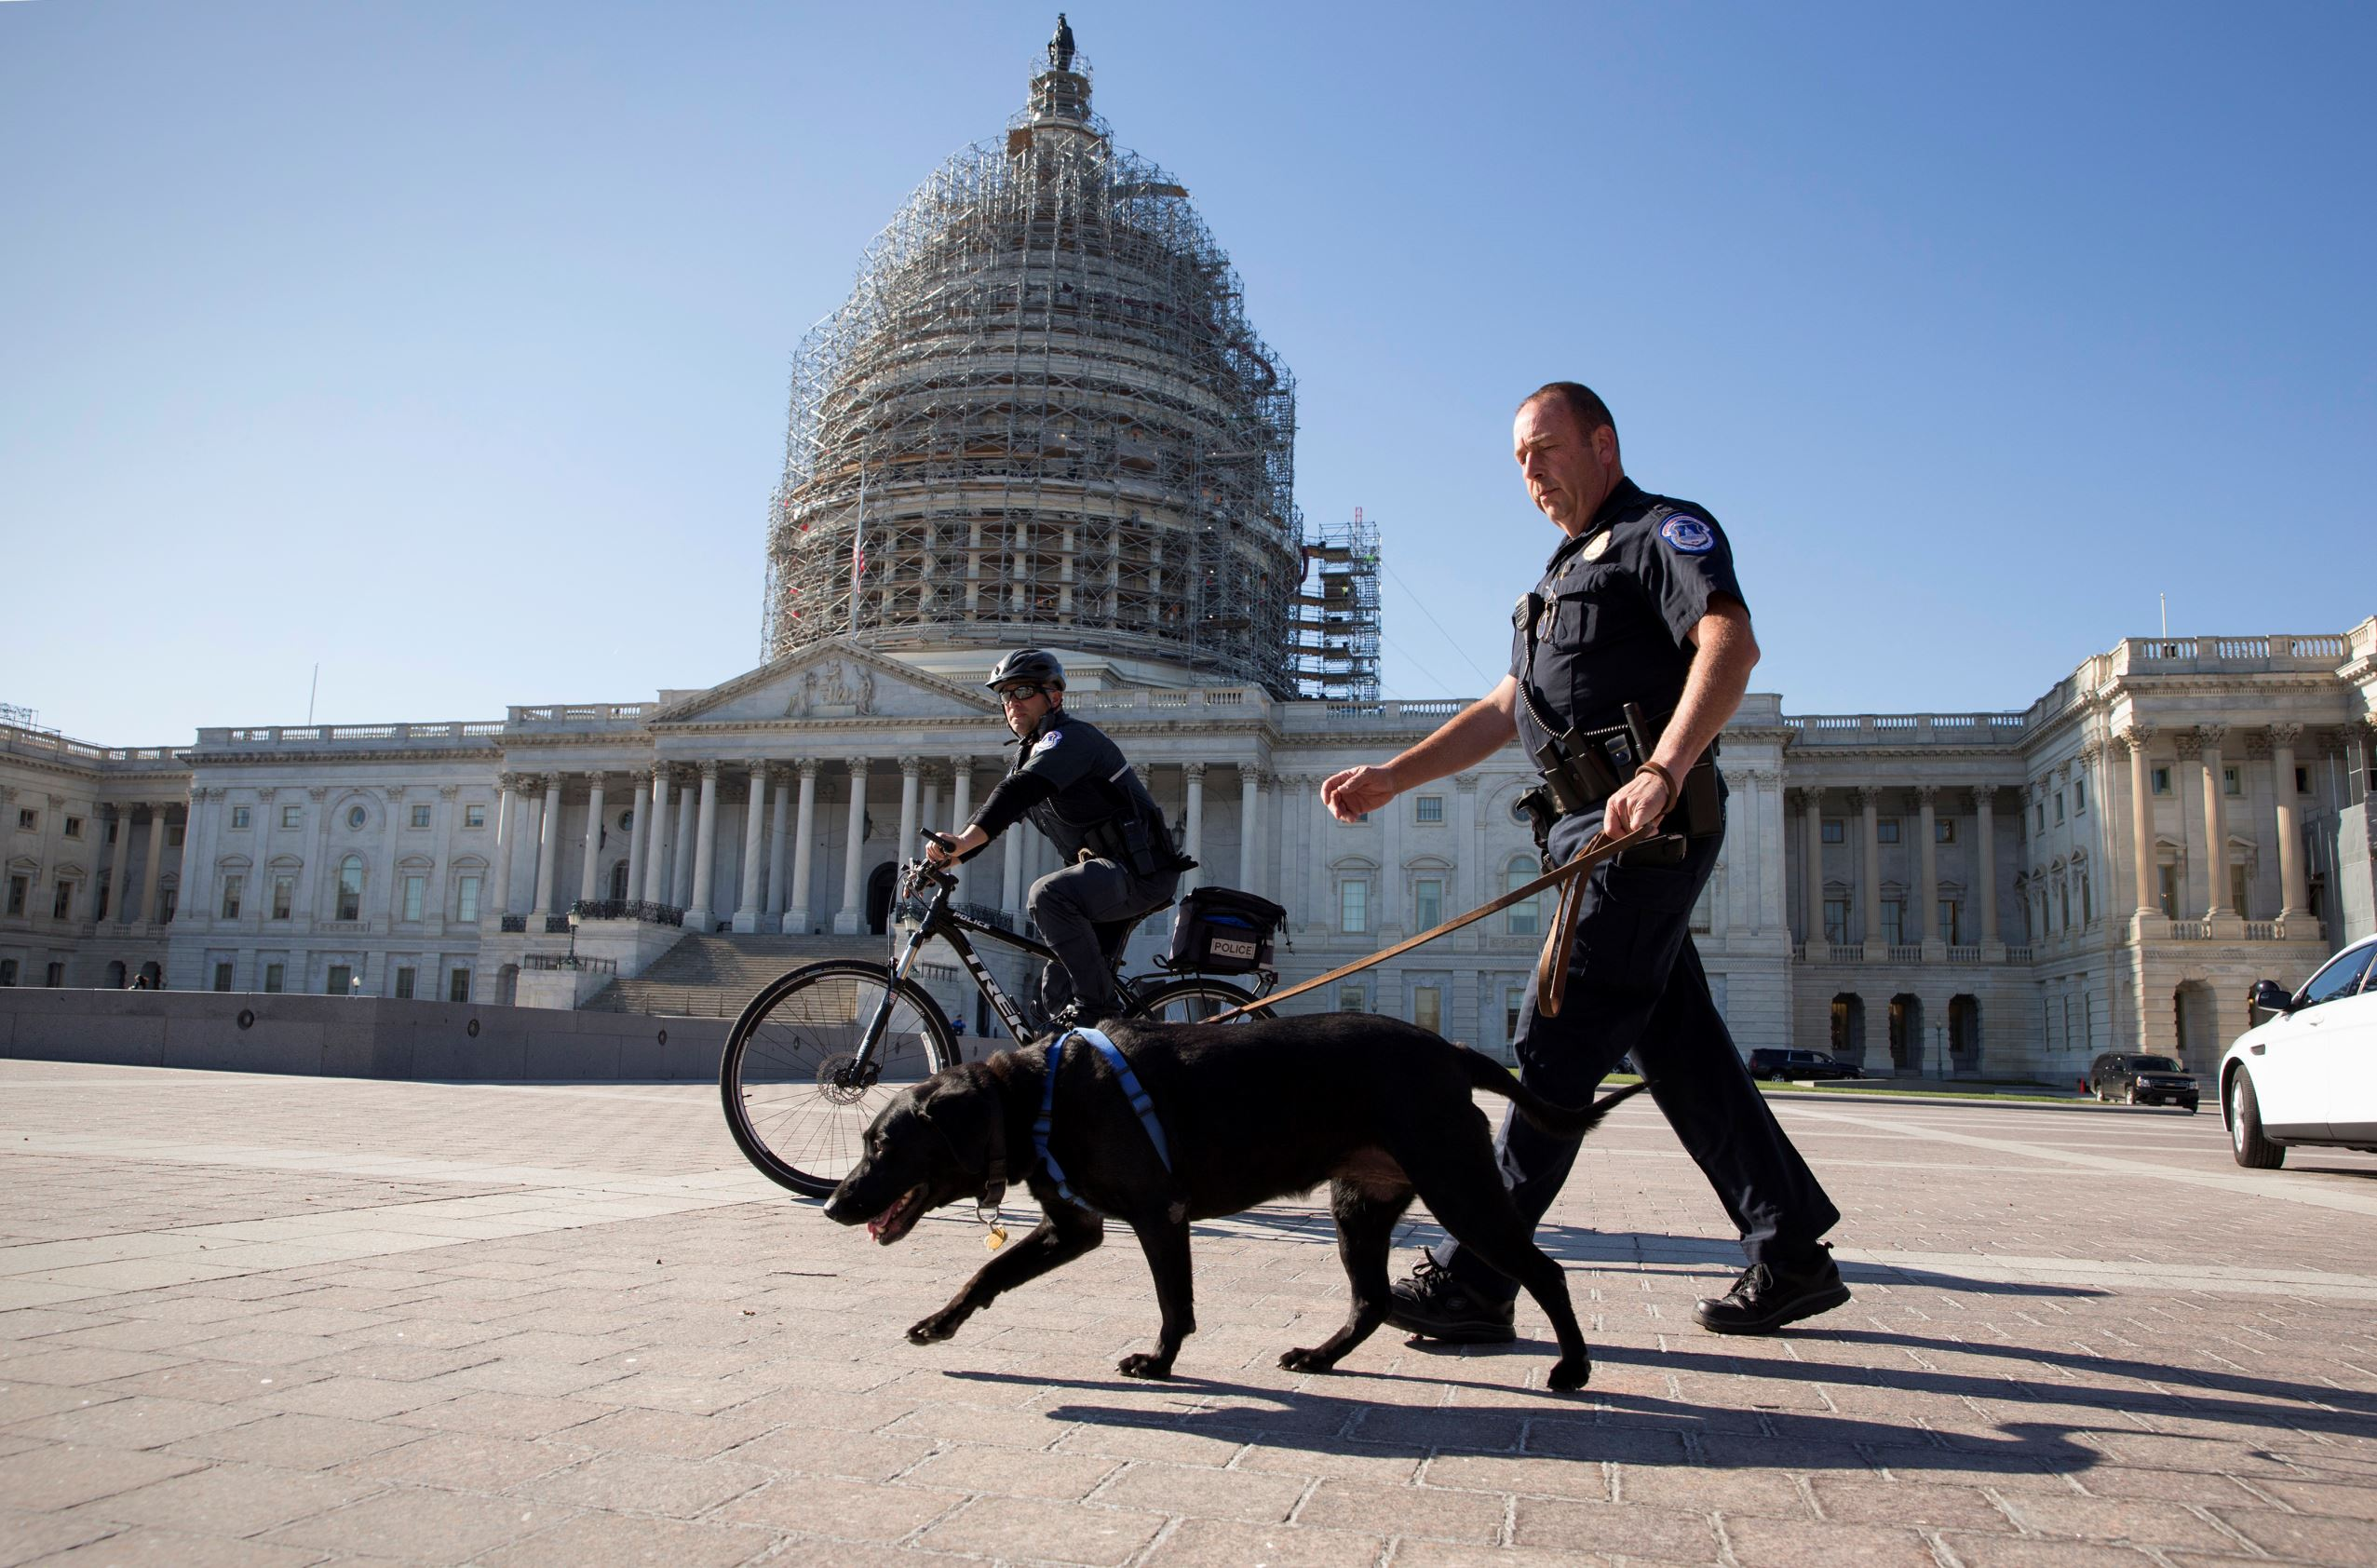 U.S. Capitol Police officers keep watch over the East Front of the Capitol as Congress prepares to return to work following the weekend terror attacks in Paris that killed 129 people, in Washington, Monday, Nov. 16, 2015.